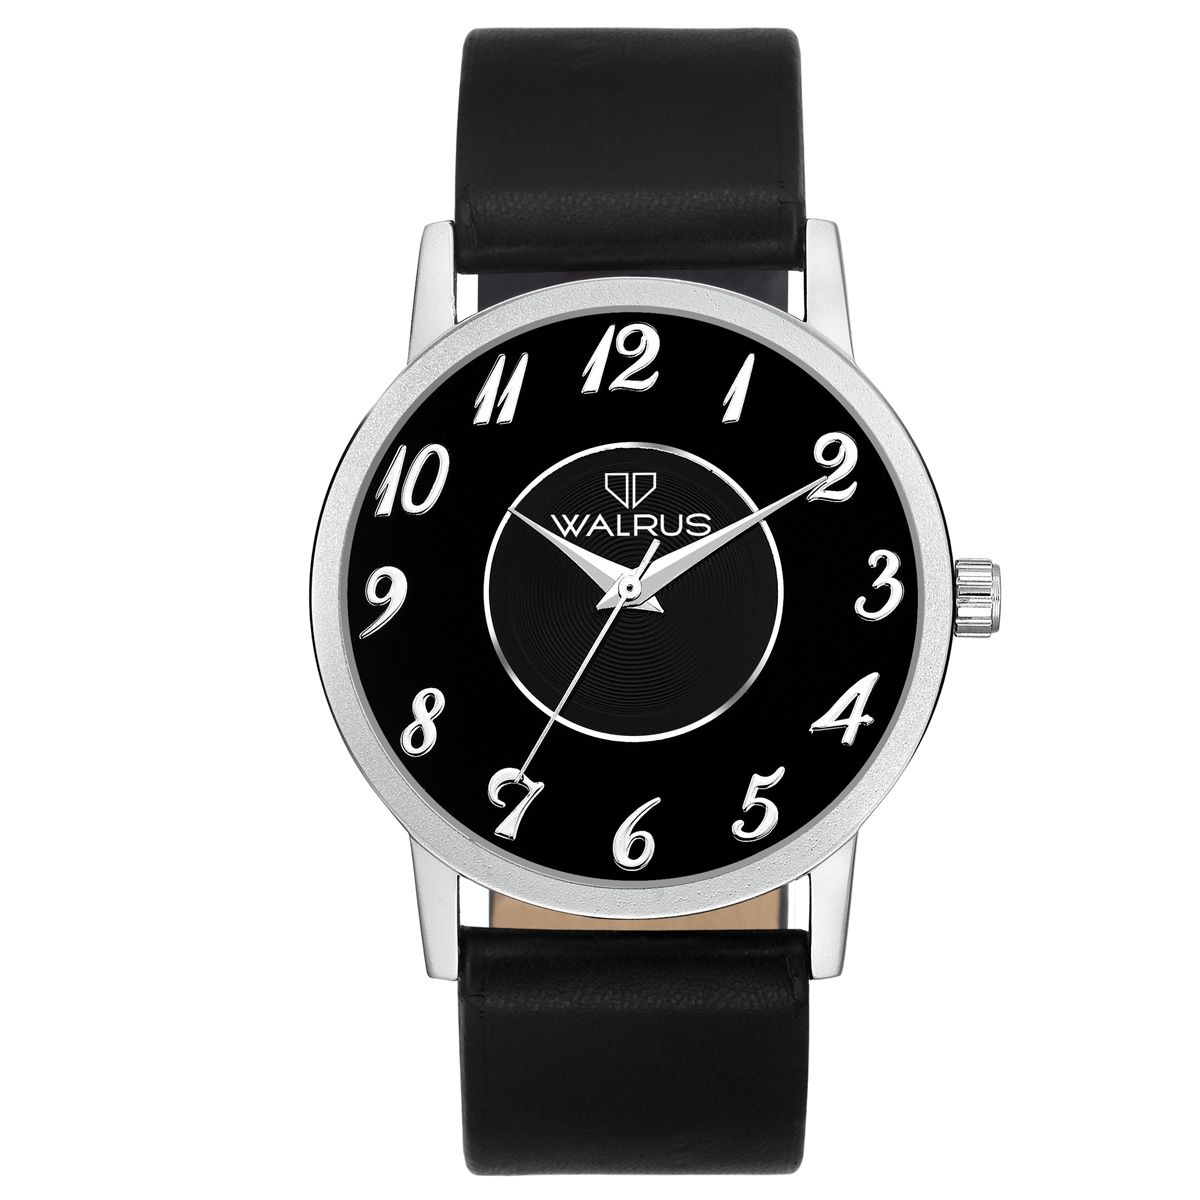 Walrus Lucas Black Color Analog Men Watch -WWM-LCS-020207